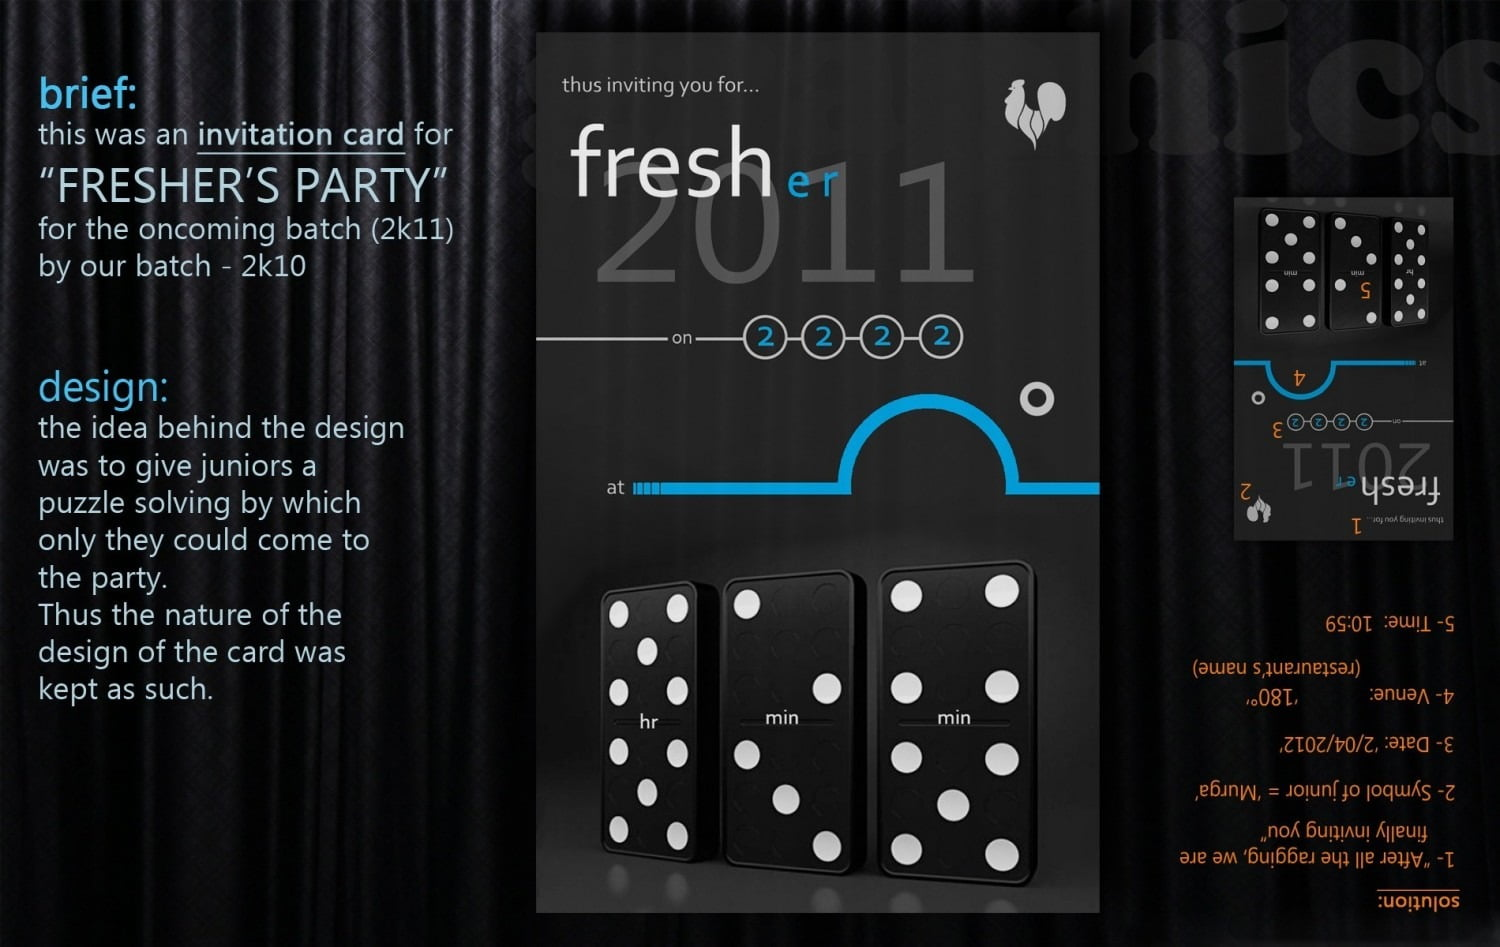 Invitation Card For Freshers Party